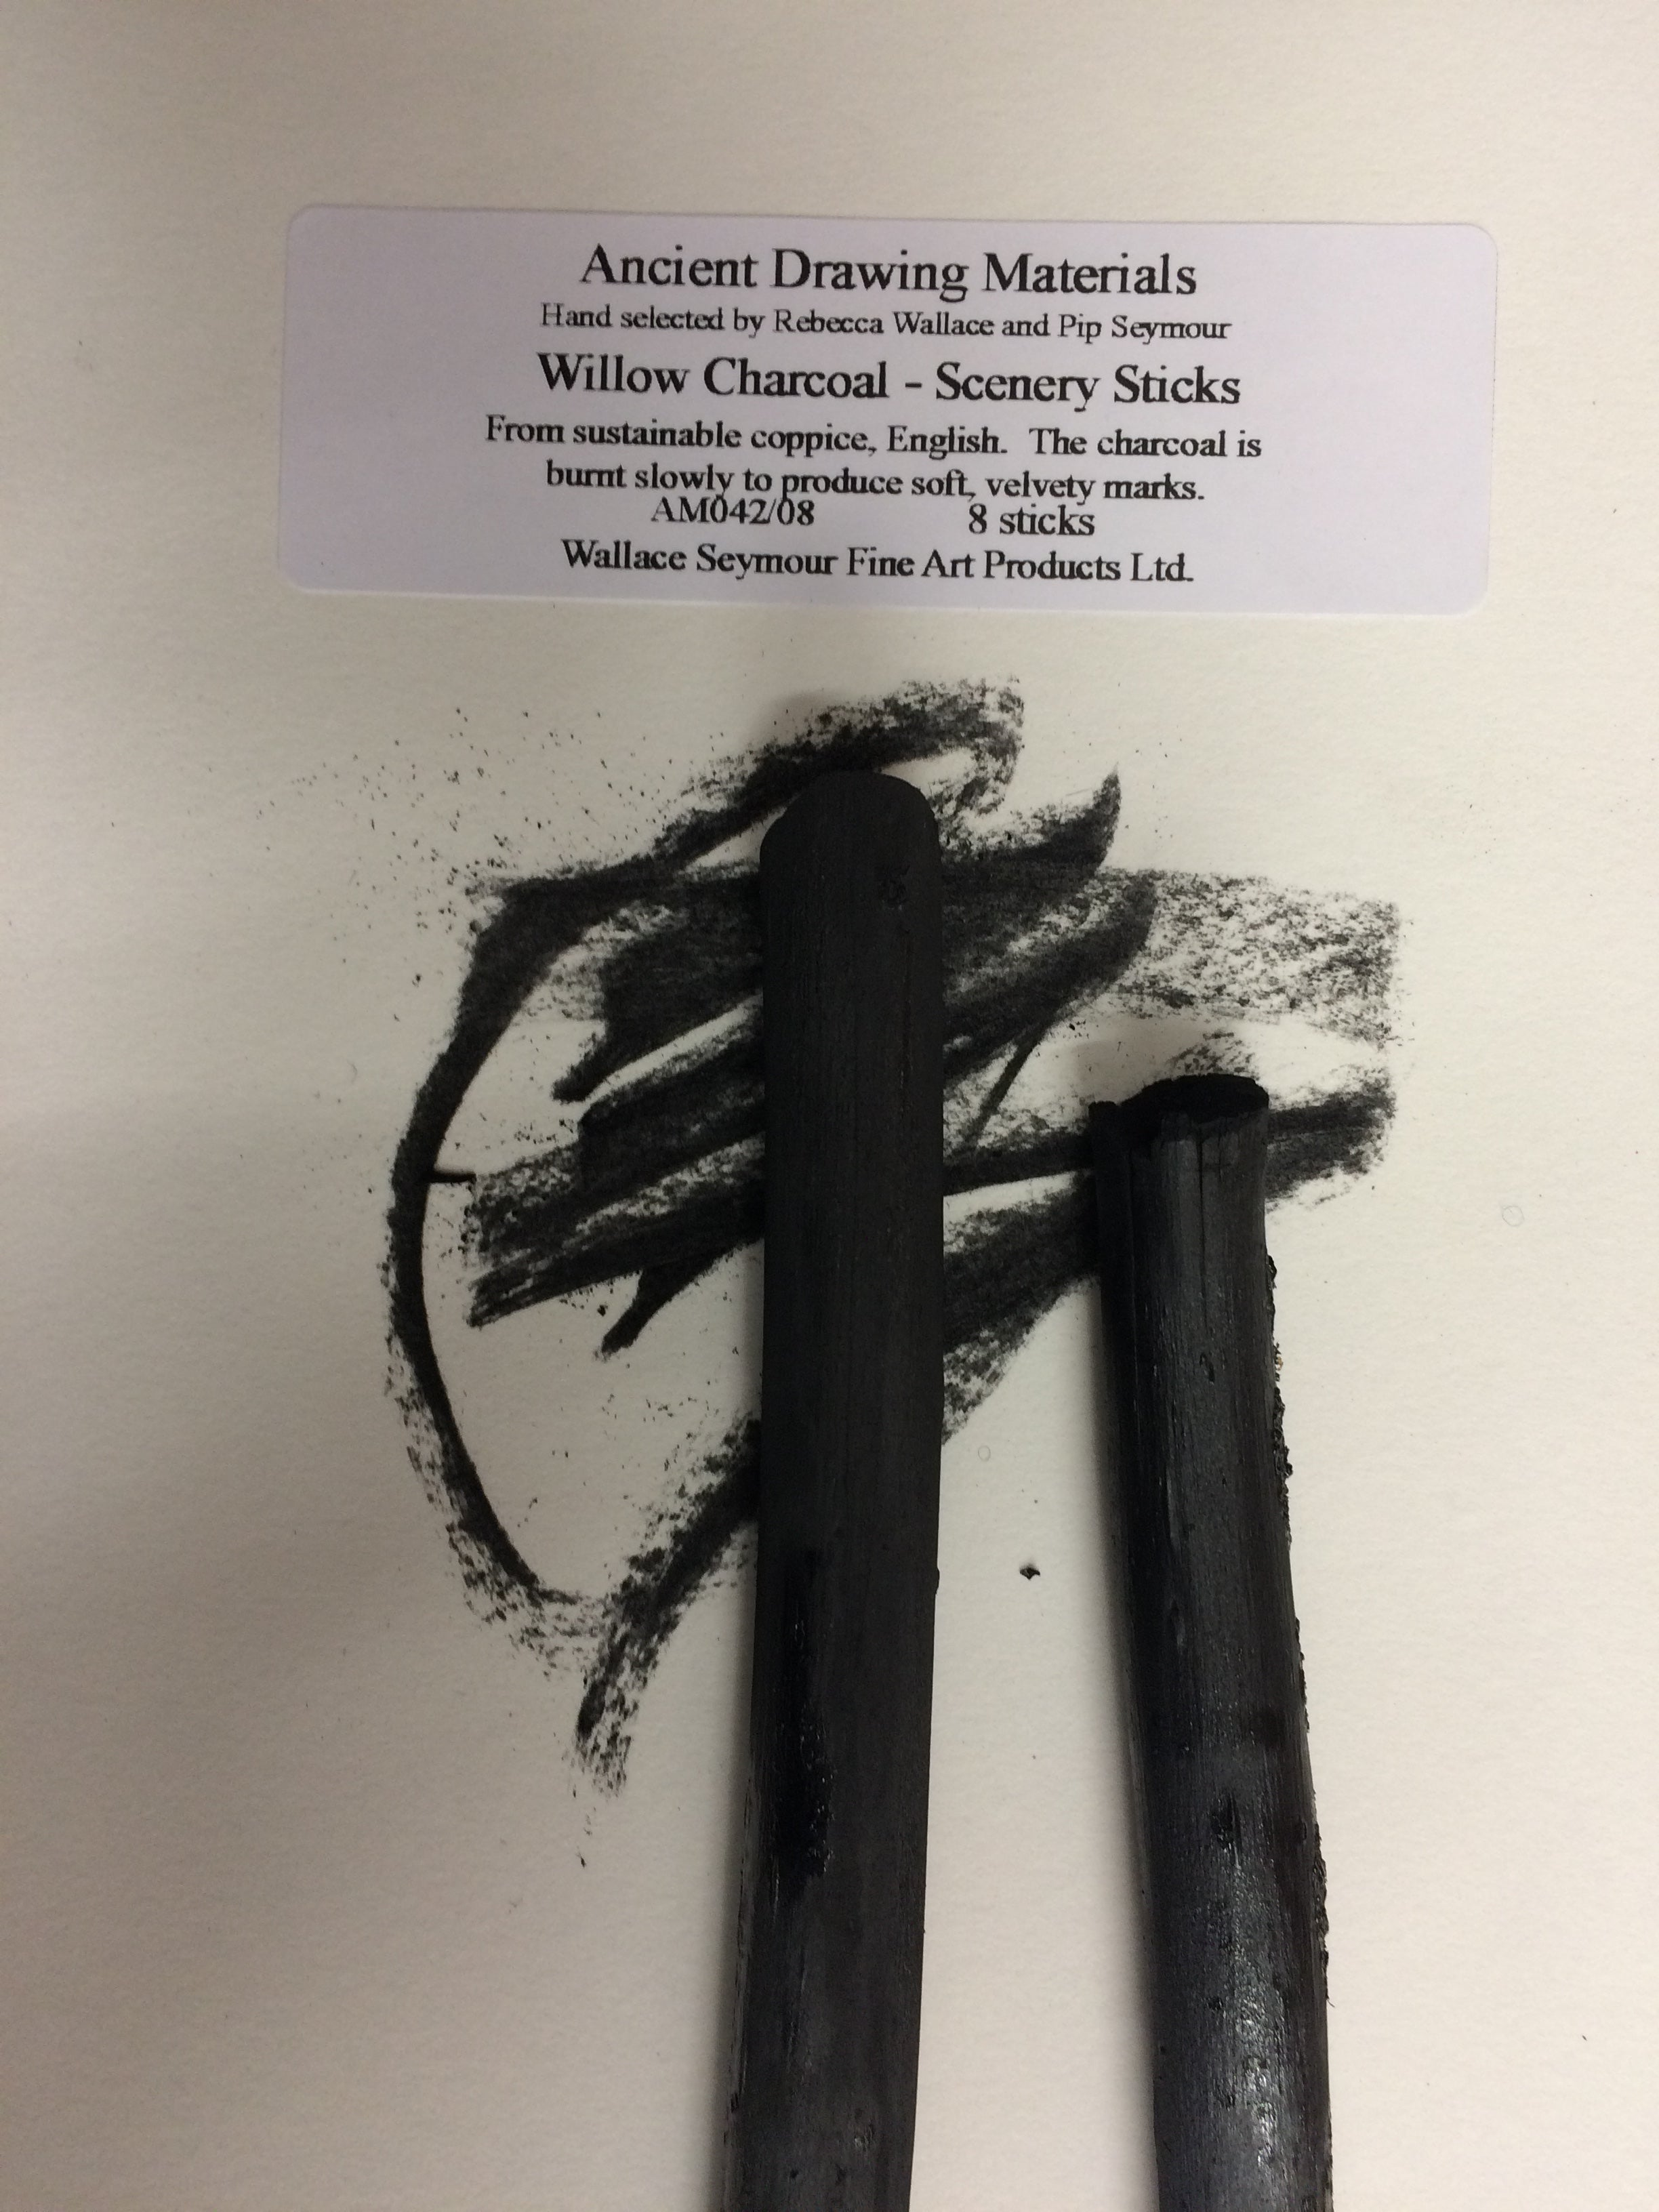 Willow Charcoal - Scenery Sticks